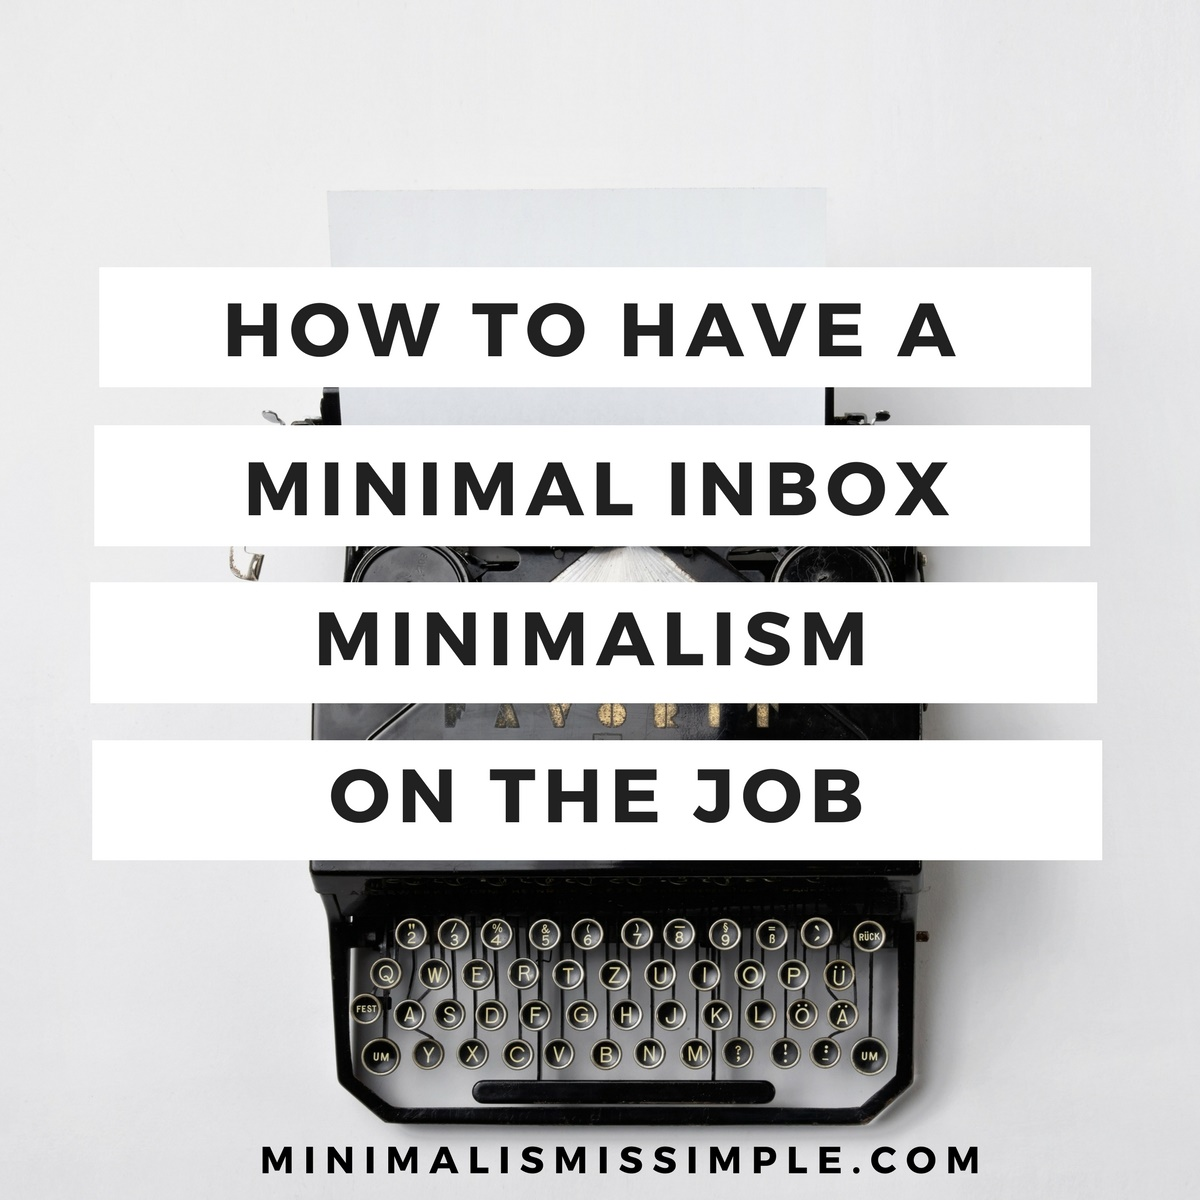 How To Have A Minimalists Inbox